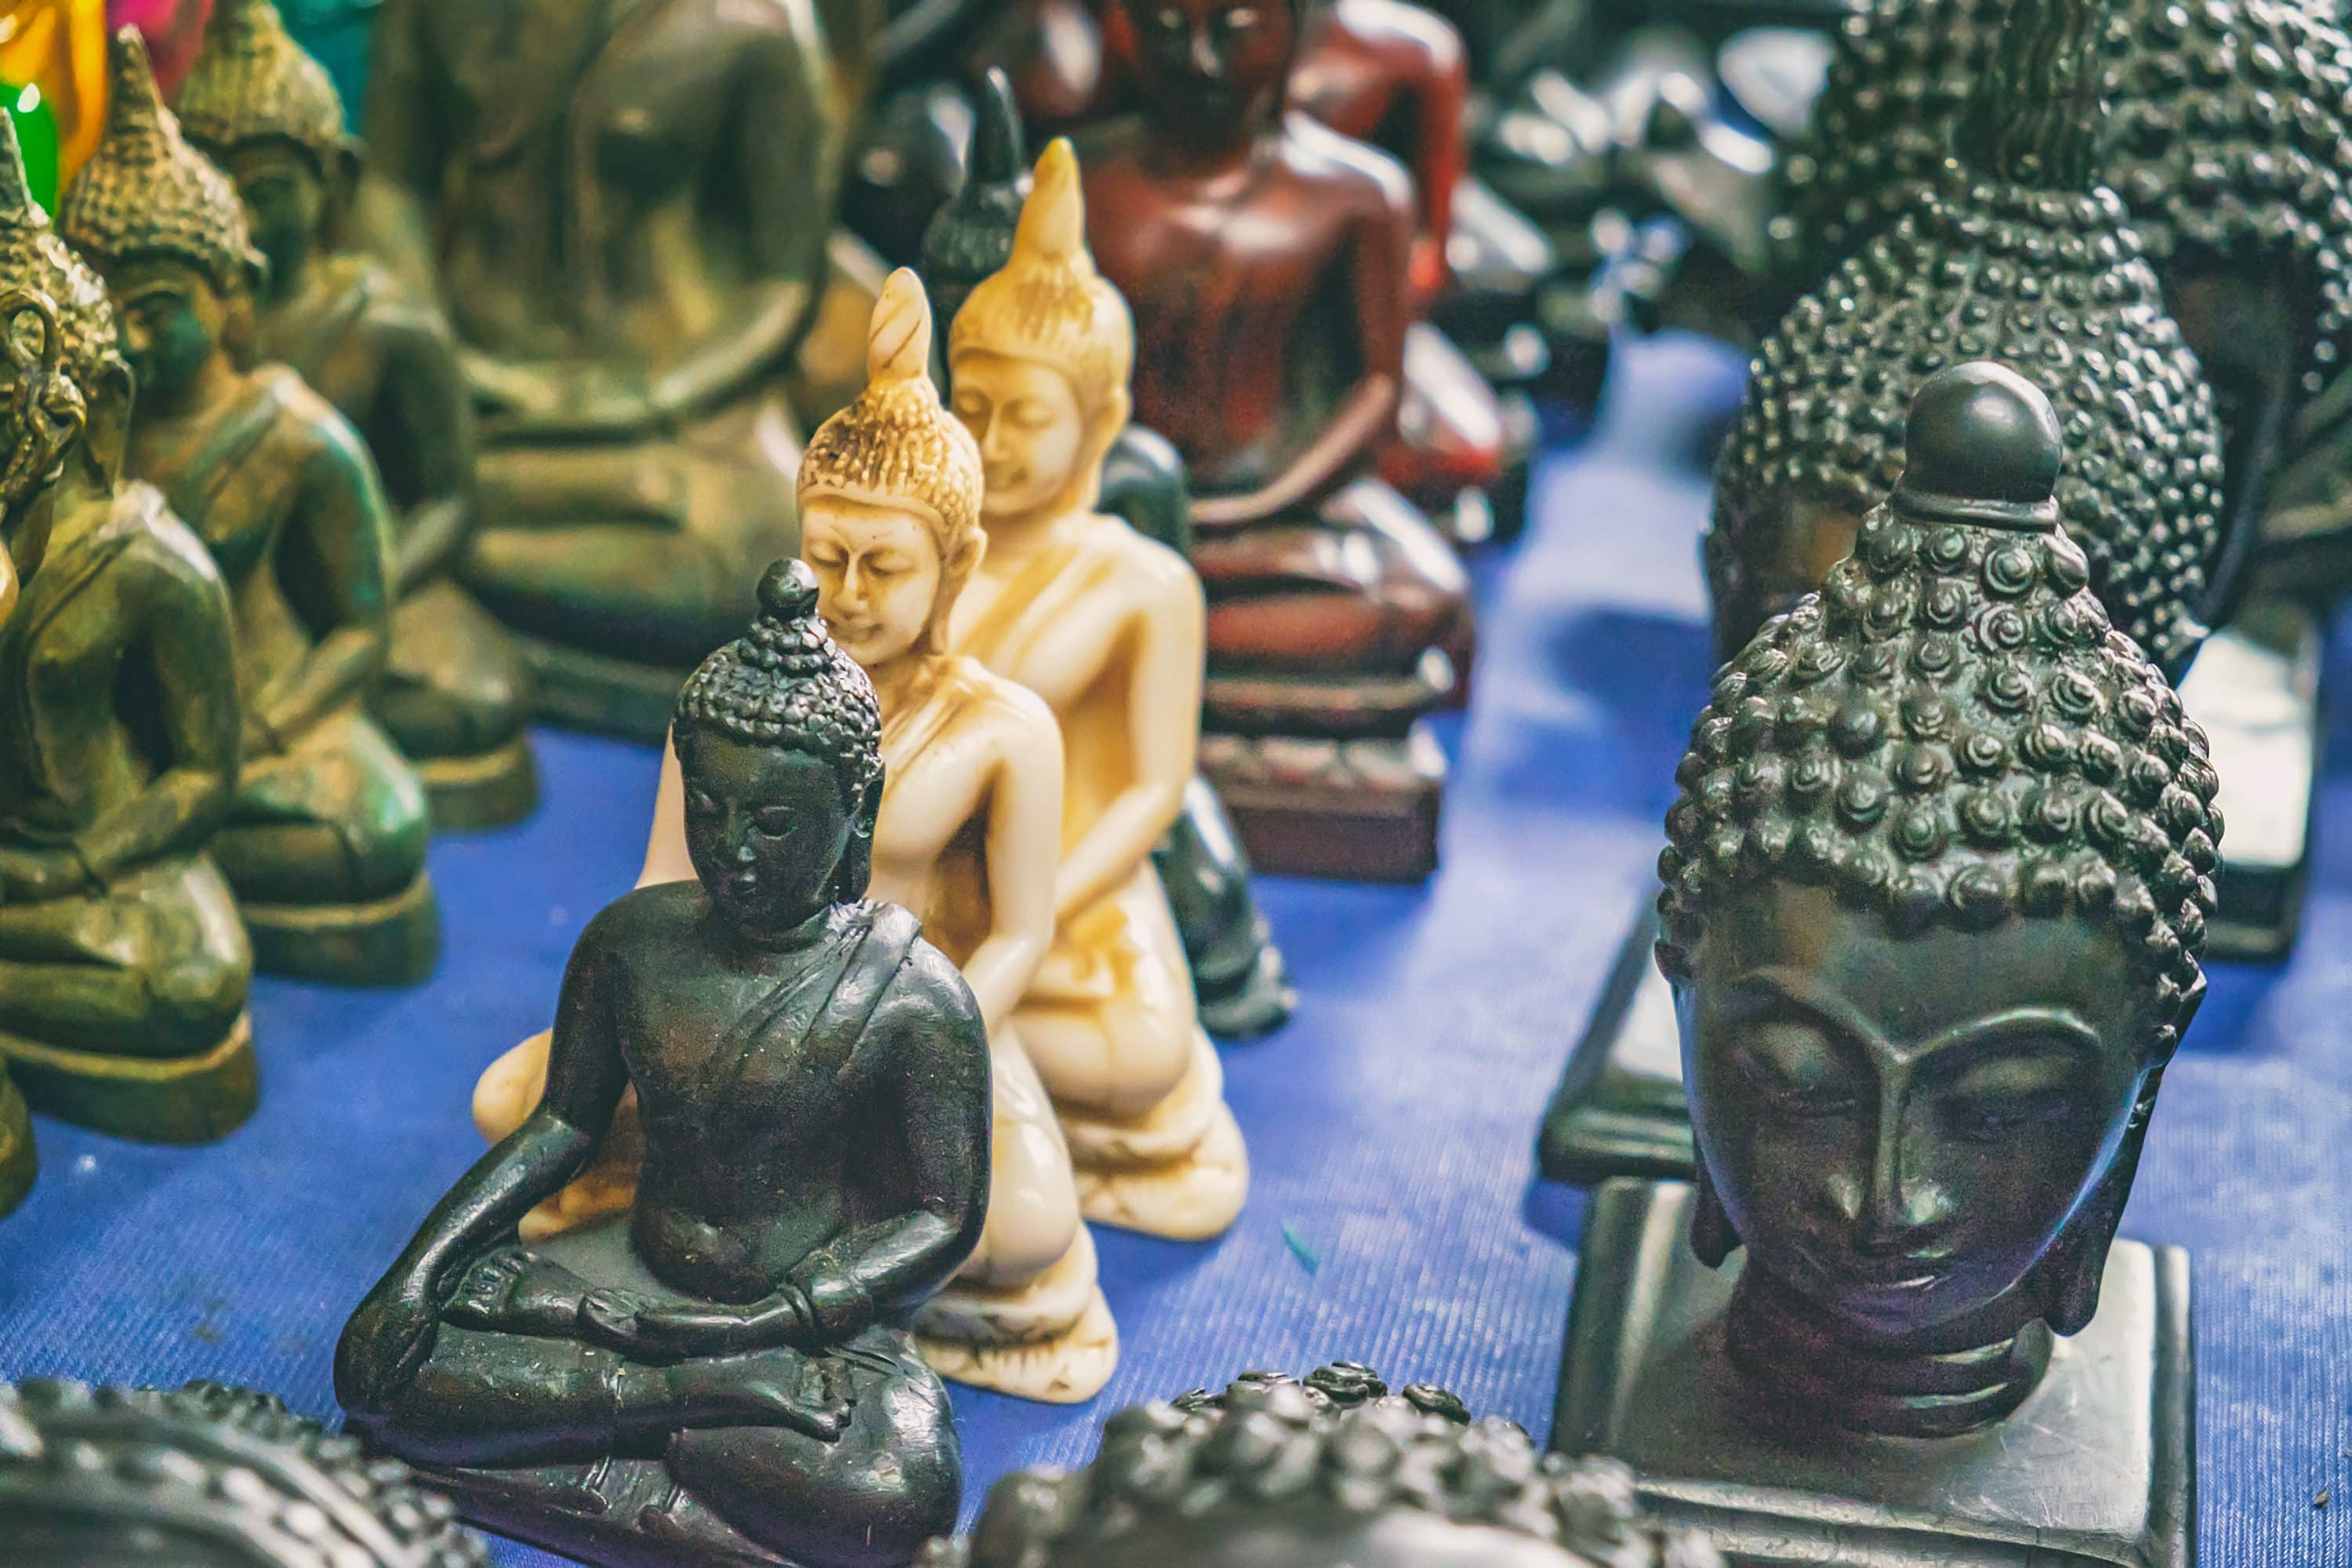 Rows of Buddha statues for sale on a market stall